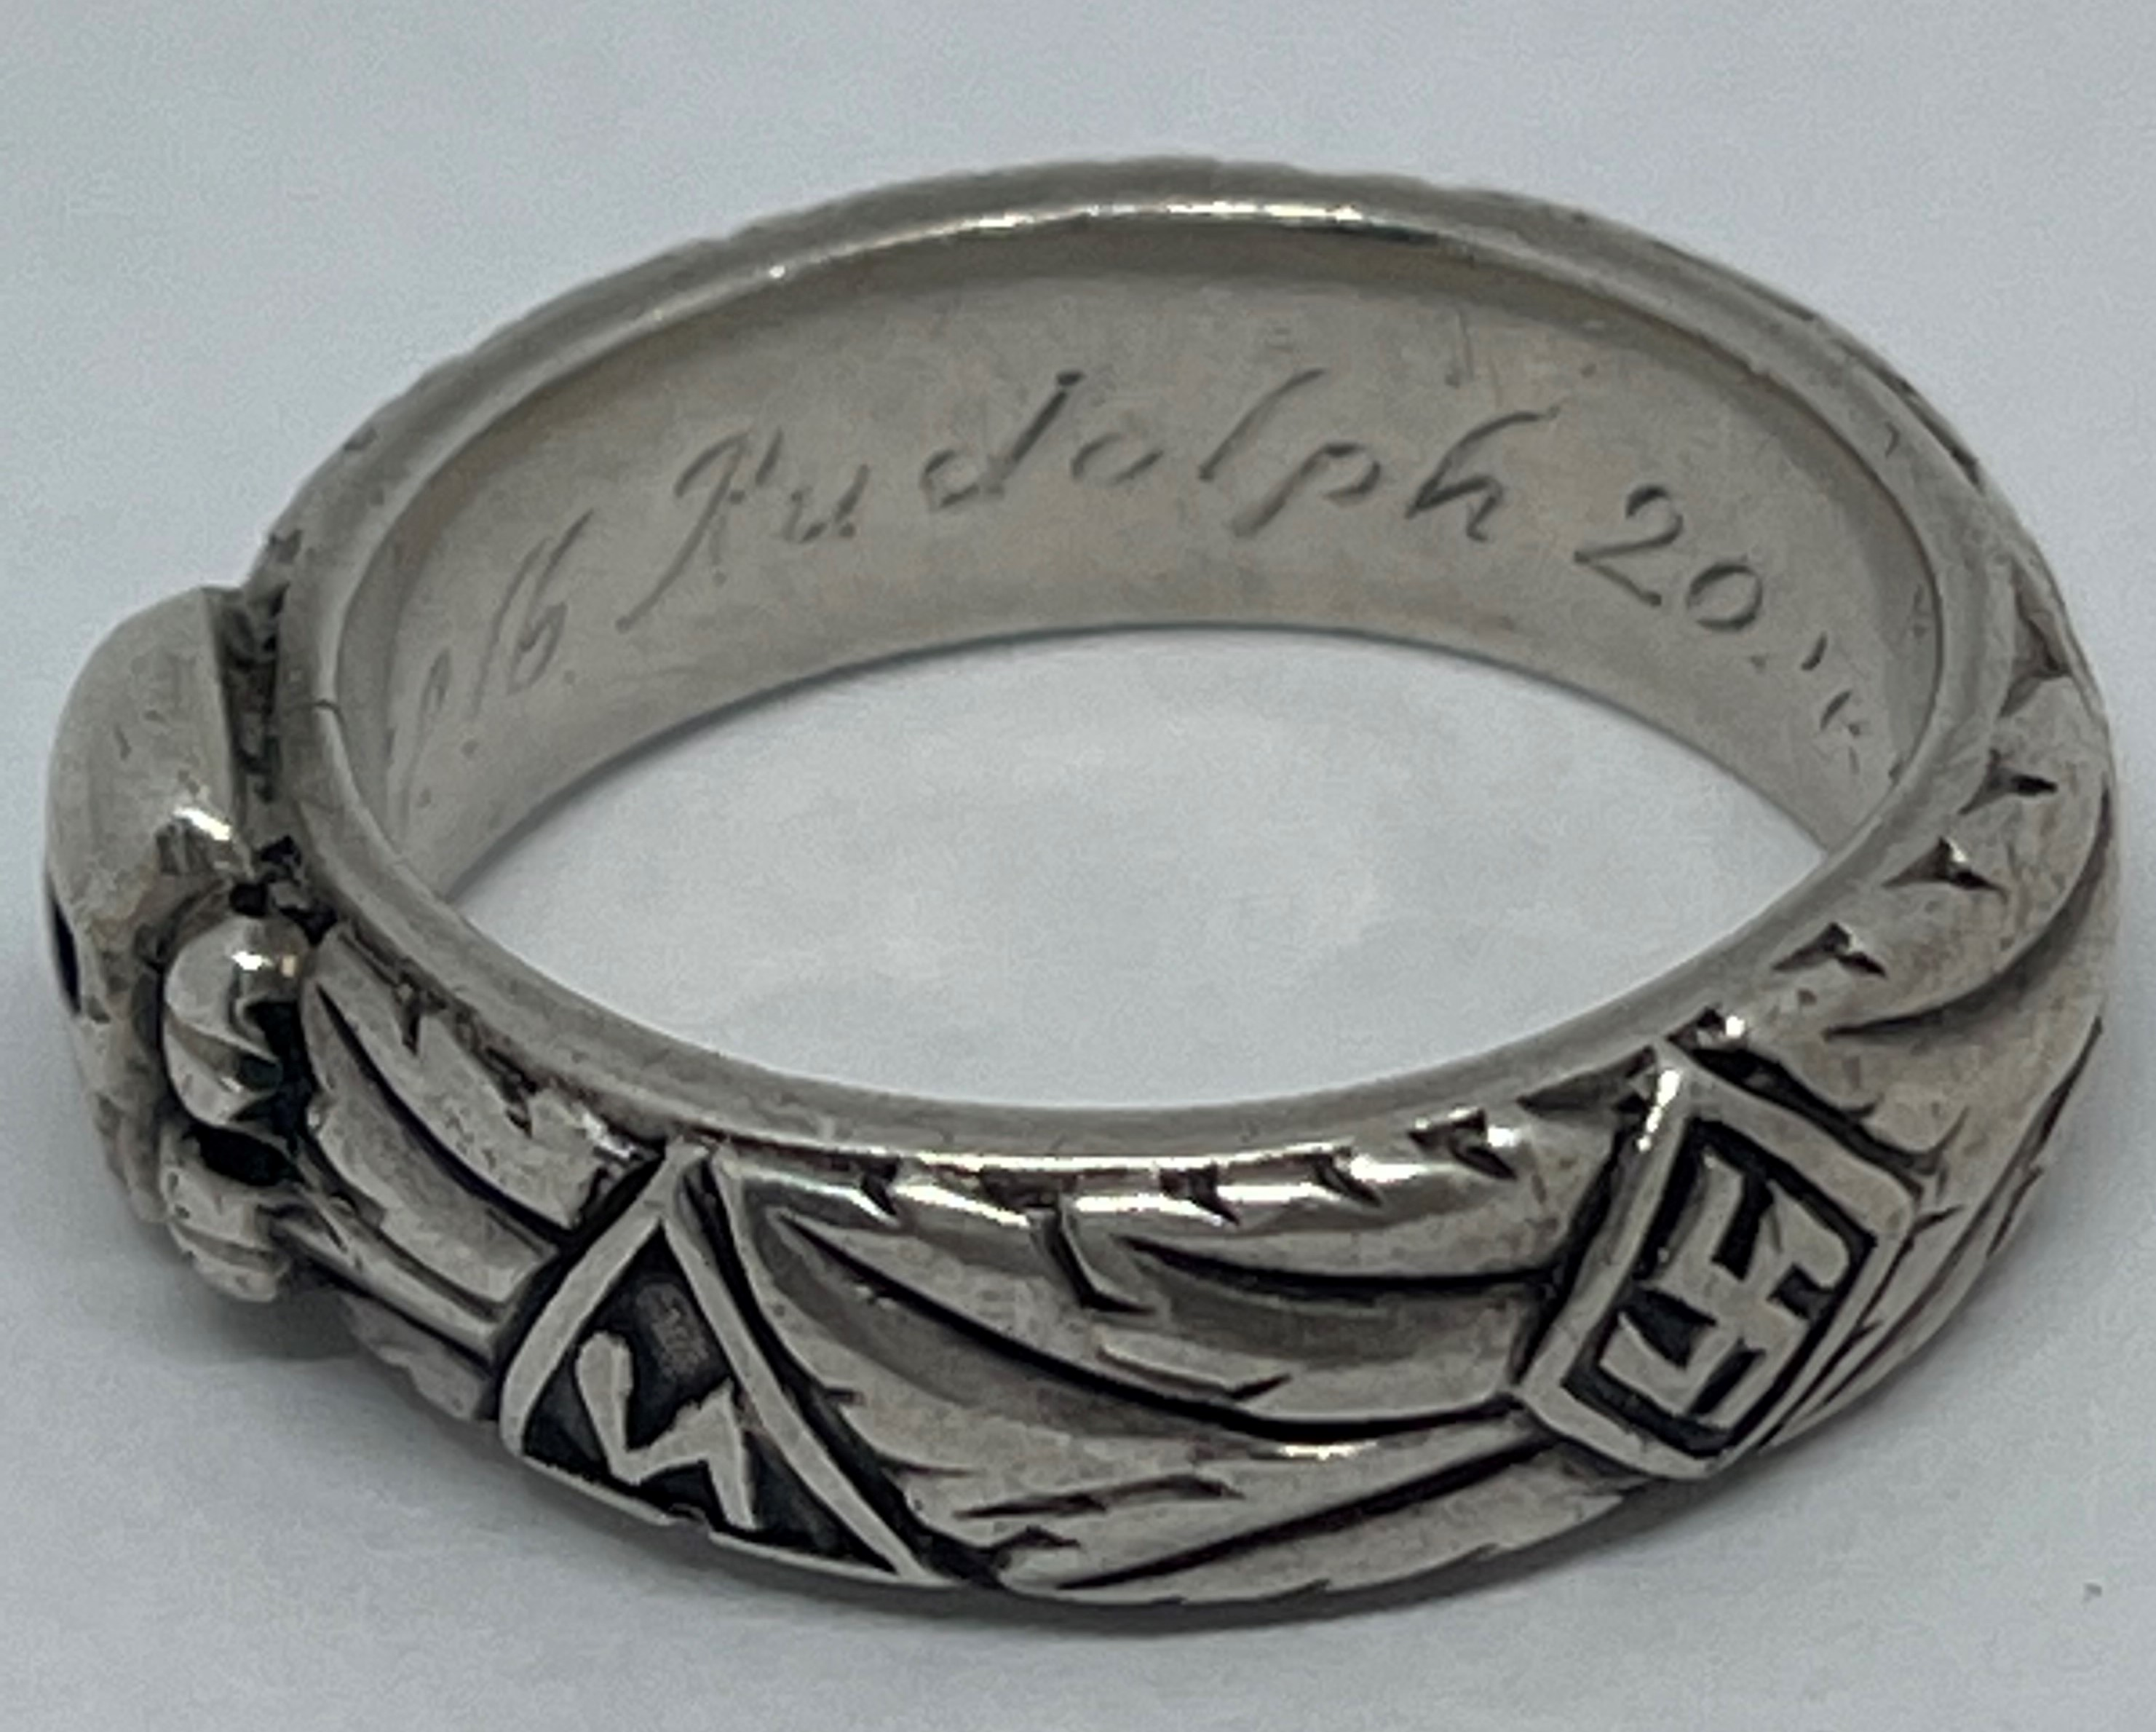 """WW2 Third Reich SS Ehrenring Totenkopf Honour Ring. Inscription engraved to the band """"Slb Rudolph - Image 3 of 5"""